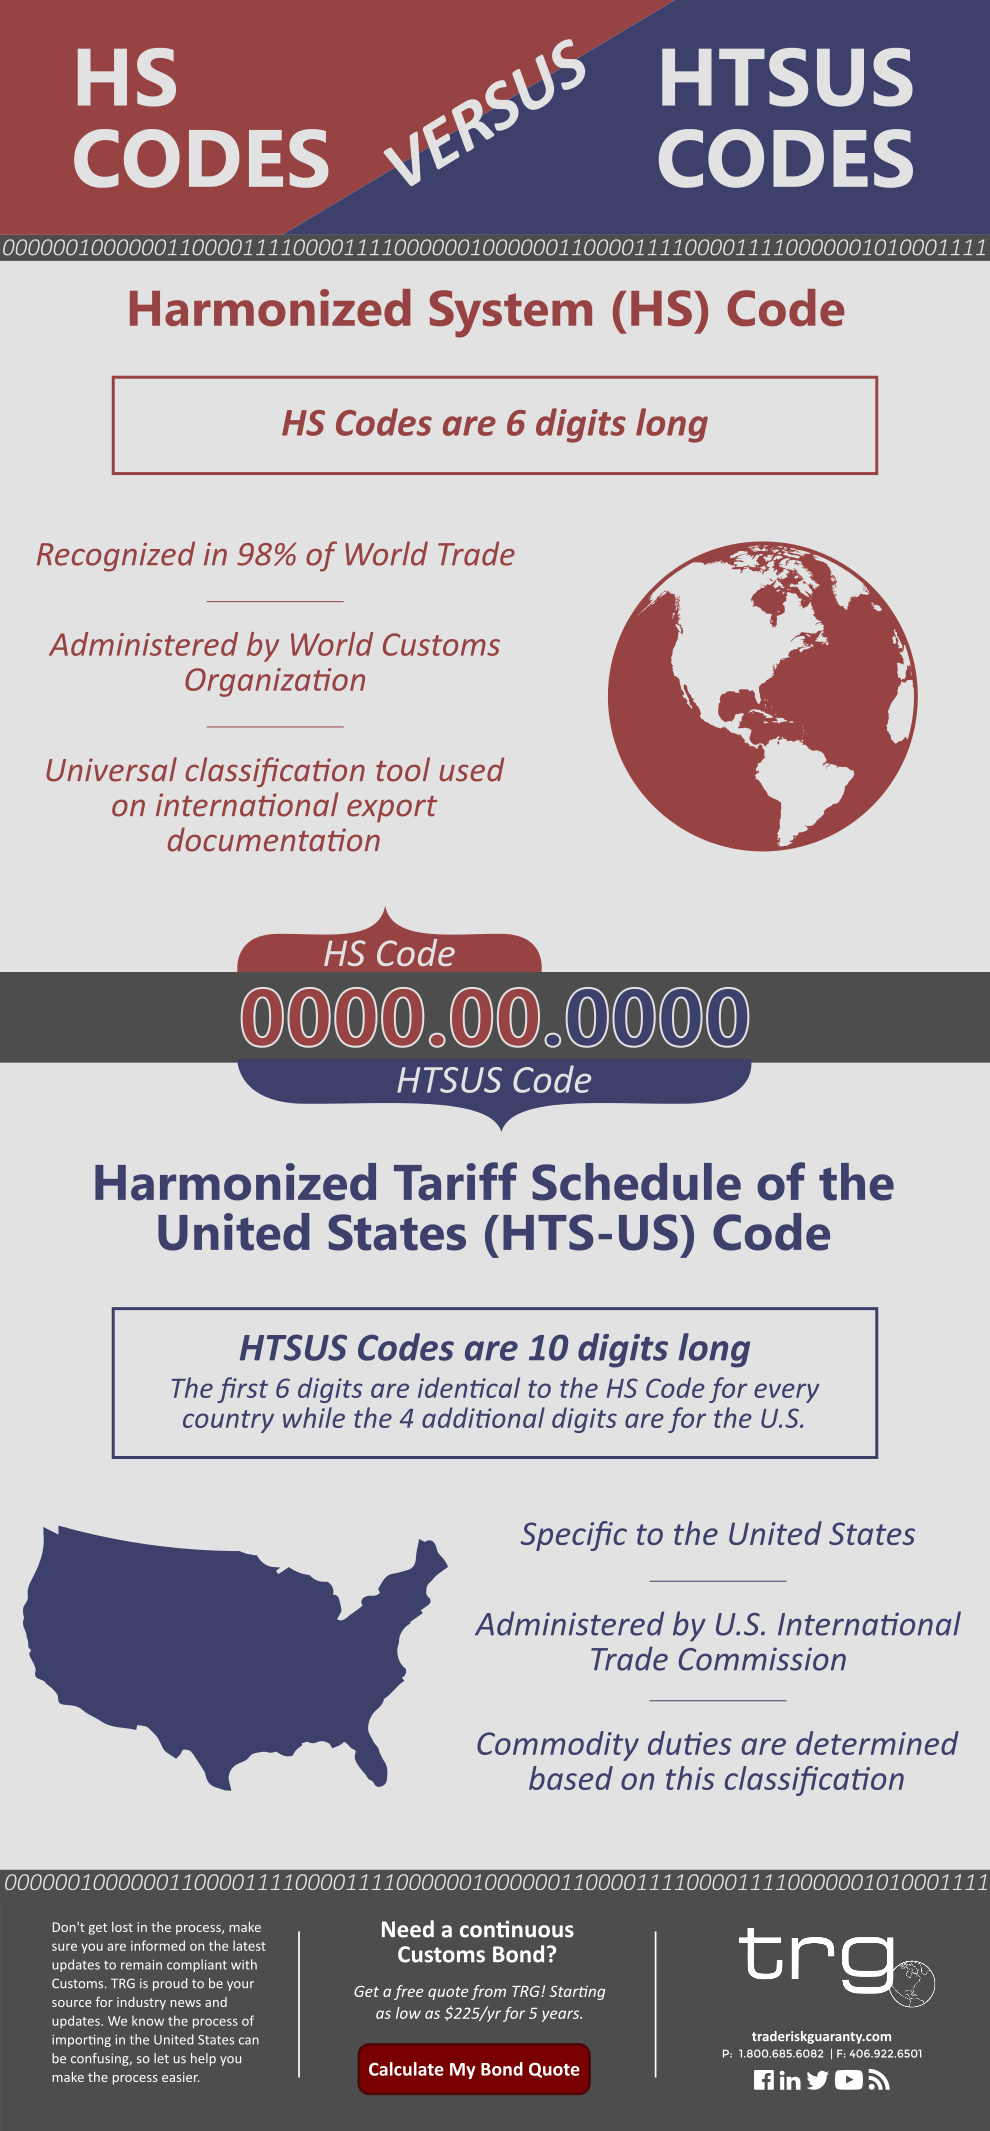 Mens jacket hs code - Learn The Difference Between Htsus Codes And Hs Codes When Classifying Imported Goods For International Trade